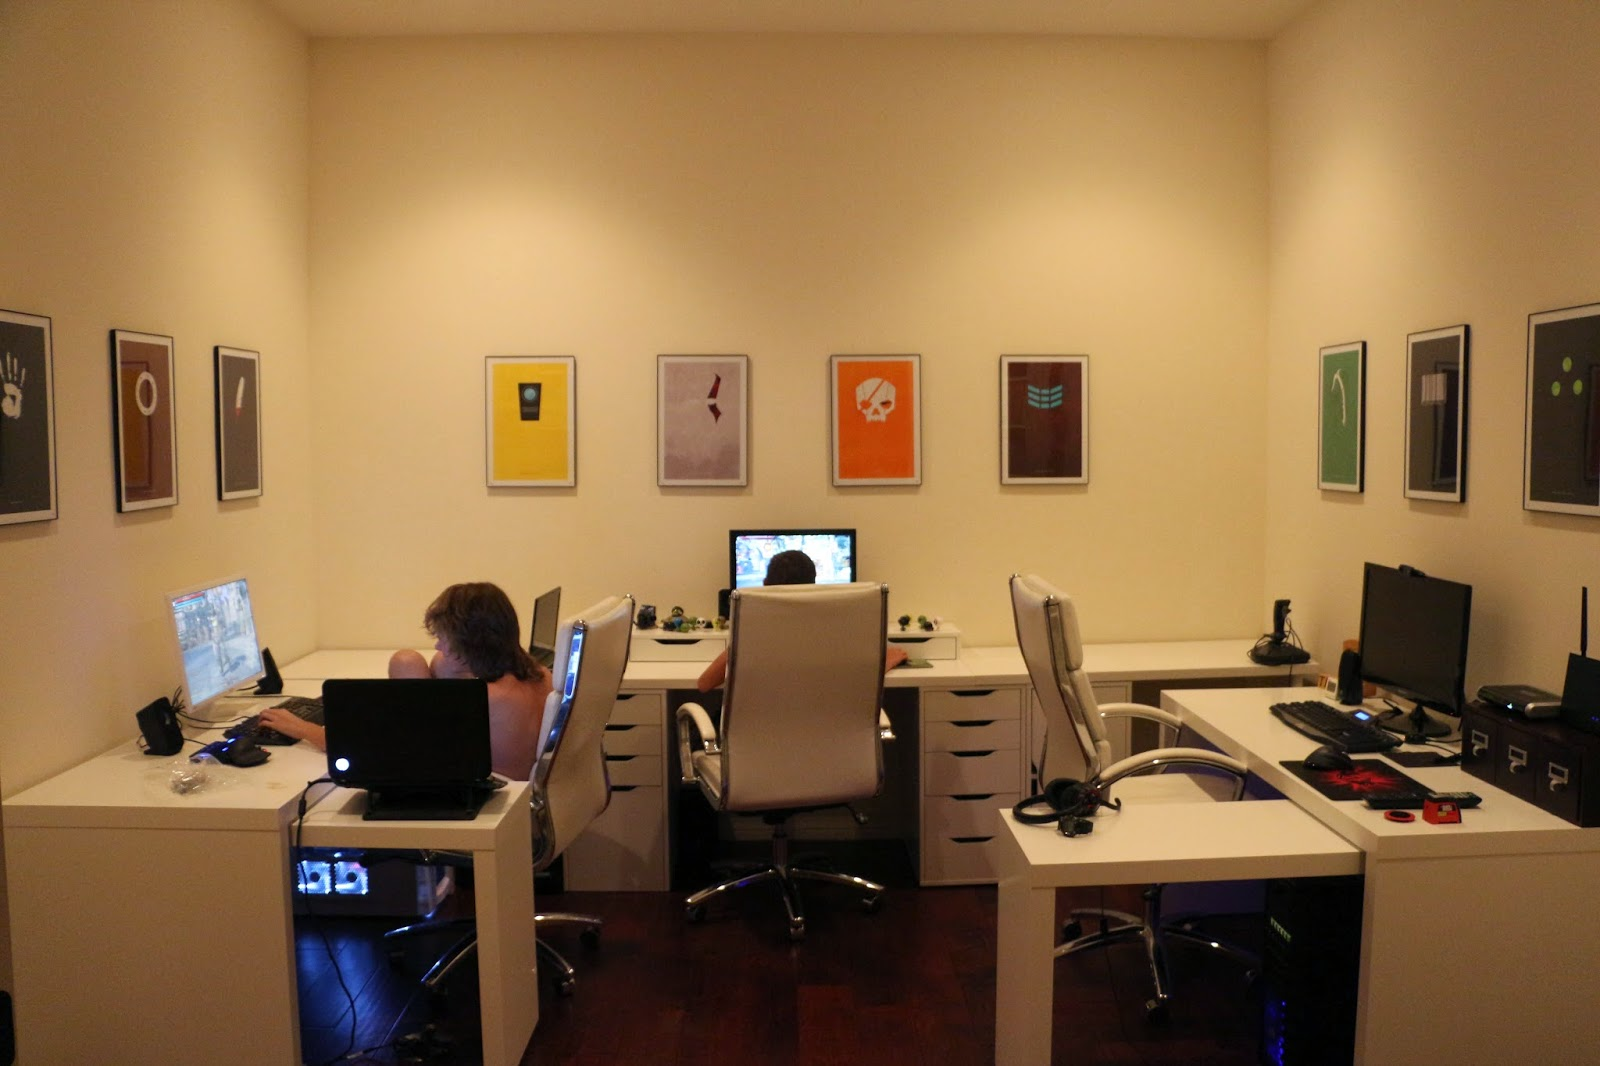 computer room, gamer room design, minimalist video game posters,